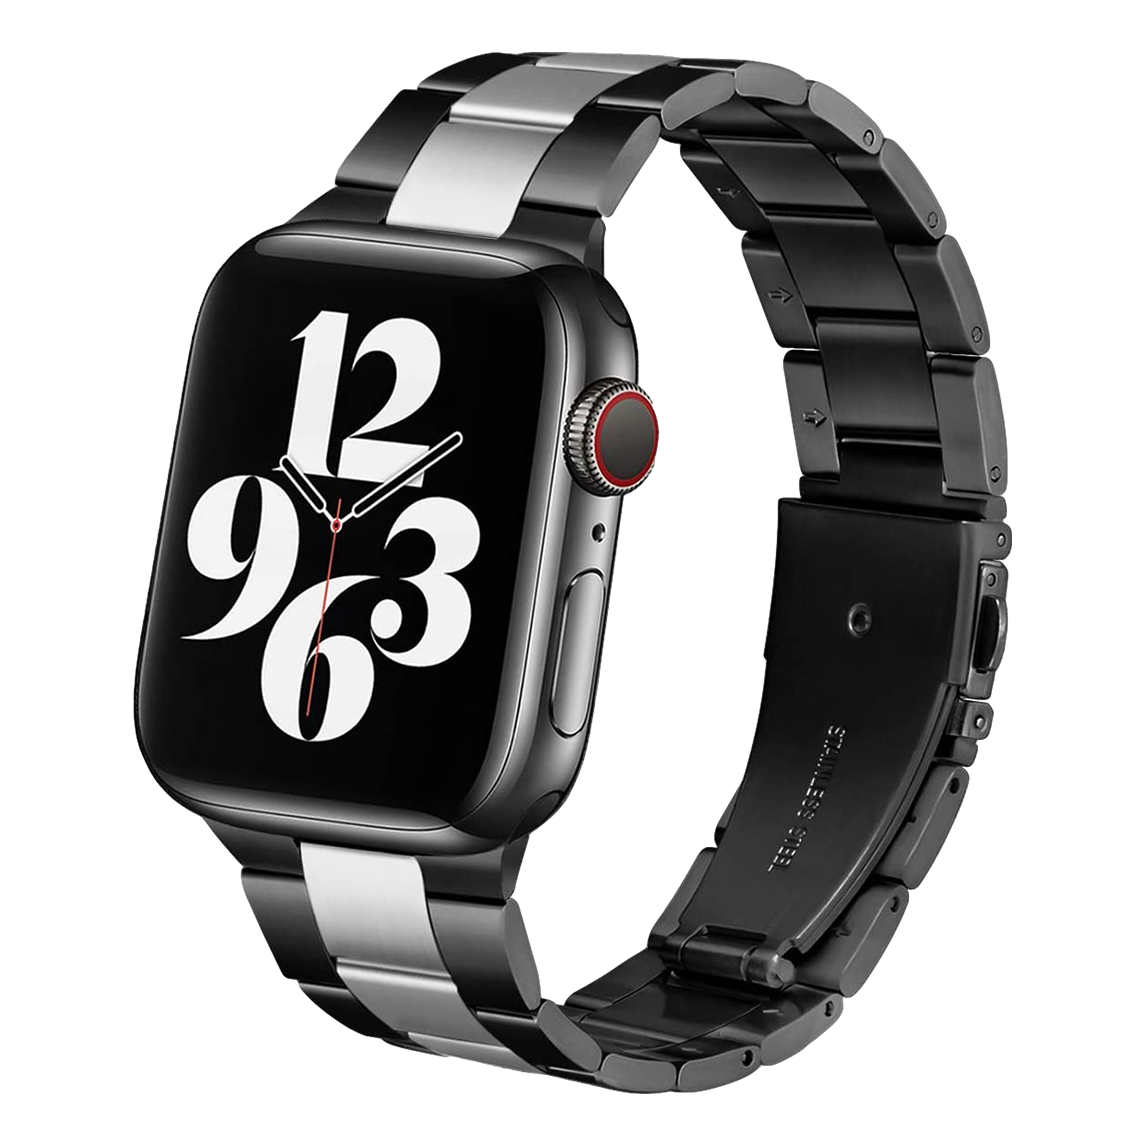 Solid Stainless Steel Band for Apple Watch 42mm / 44mm - Black x Silver